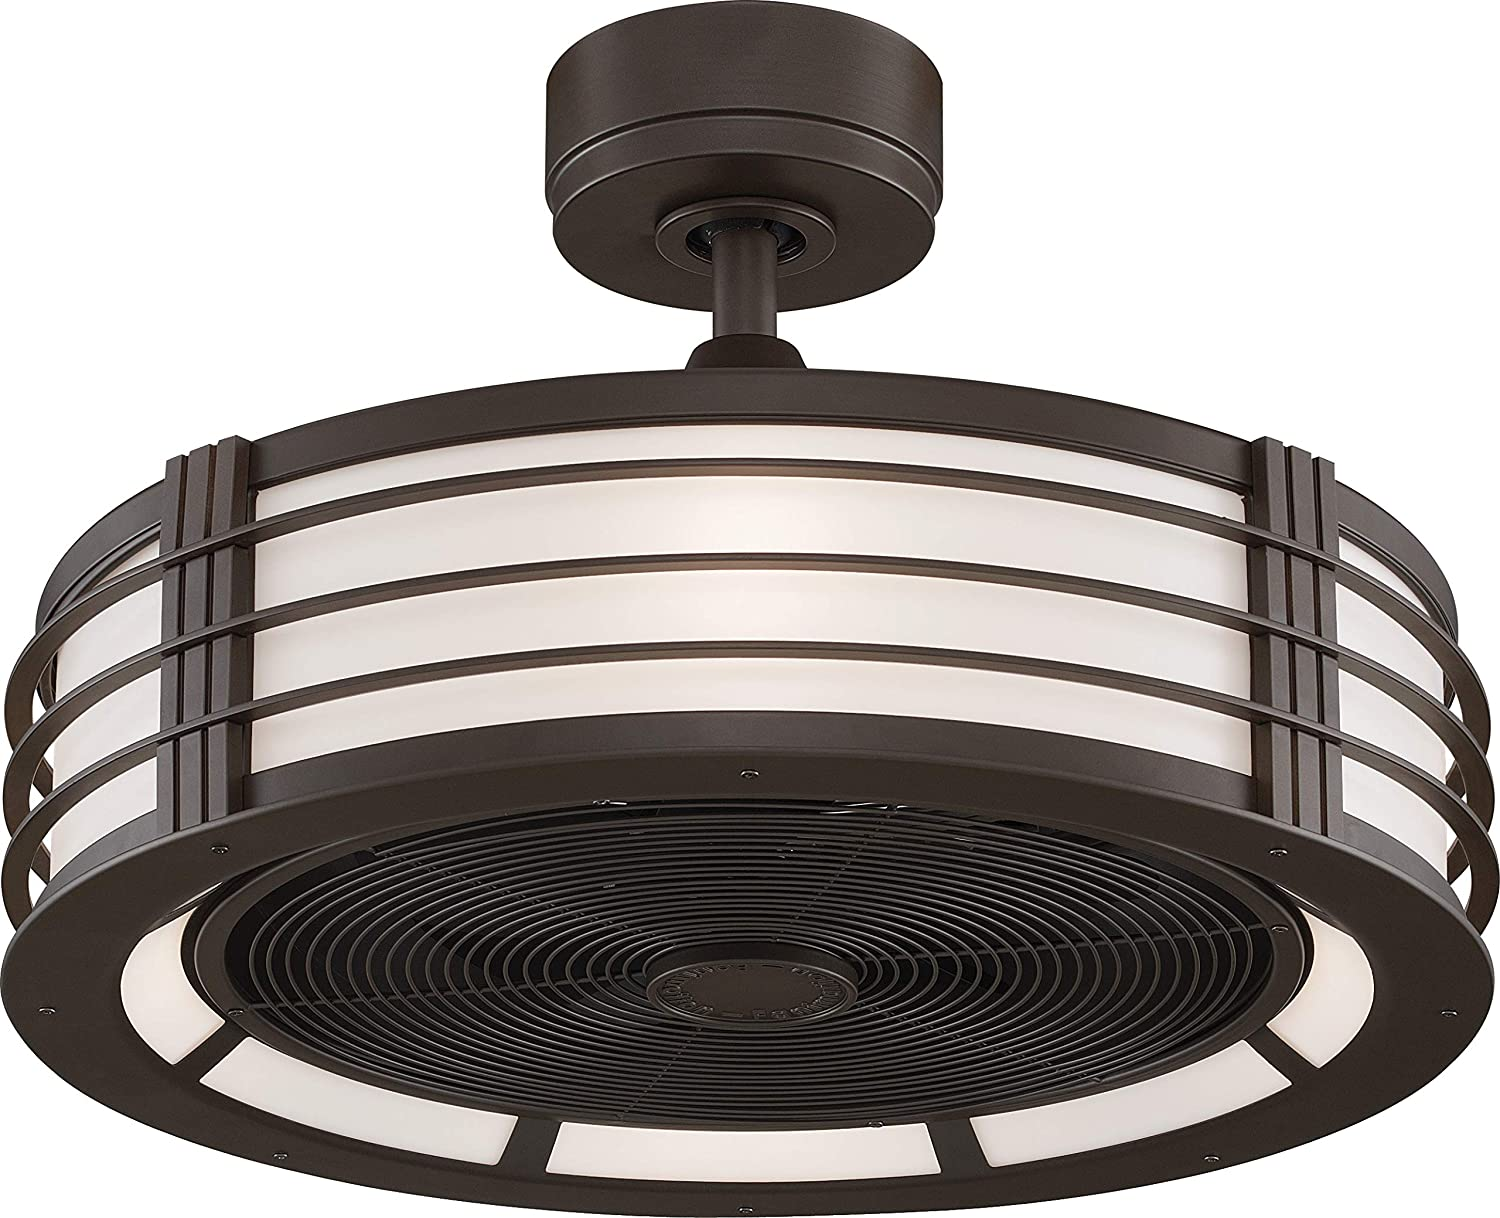 Fanimation FP7964BOB The Beckwith Ceilling Fan with Frosted Shade Light Kit and Remote Control, 23-Inch, Oil-Rubbed Bronze